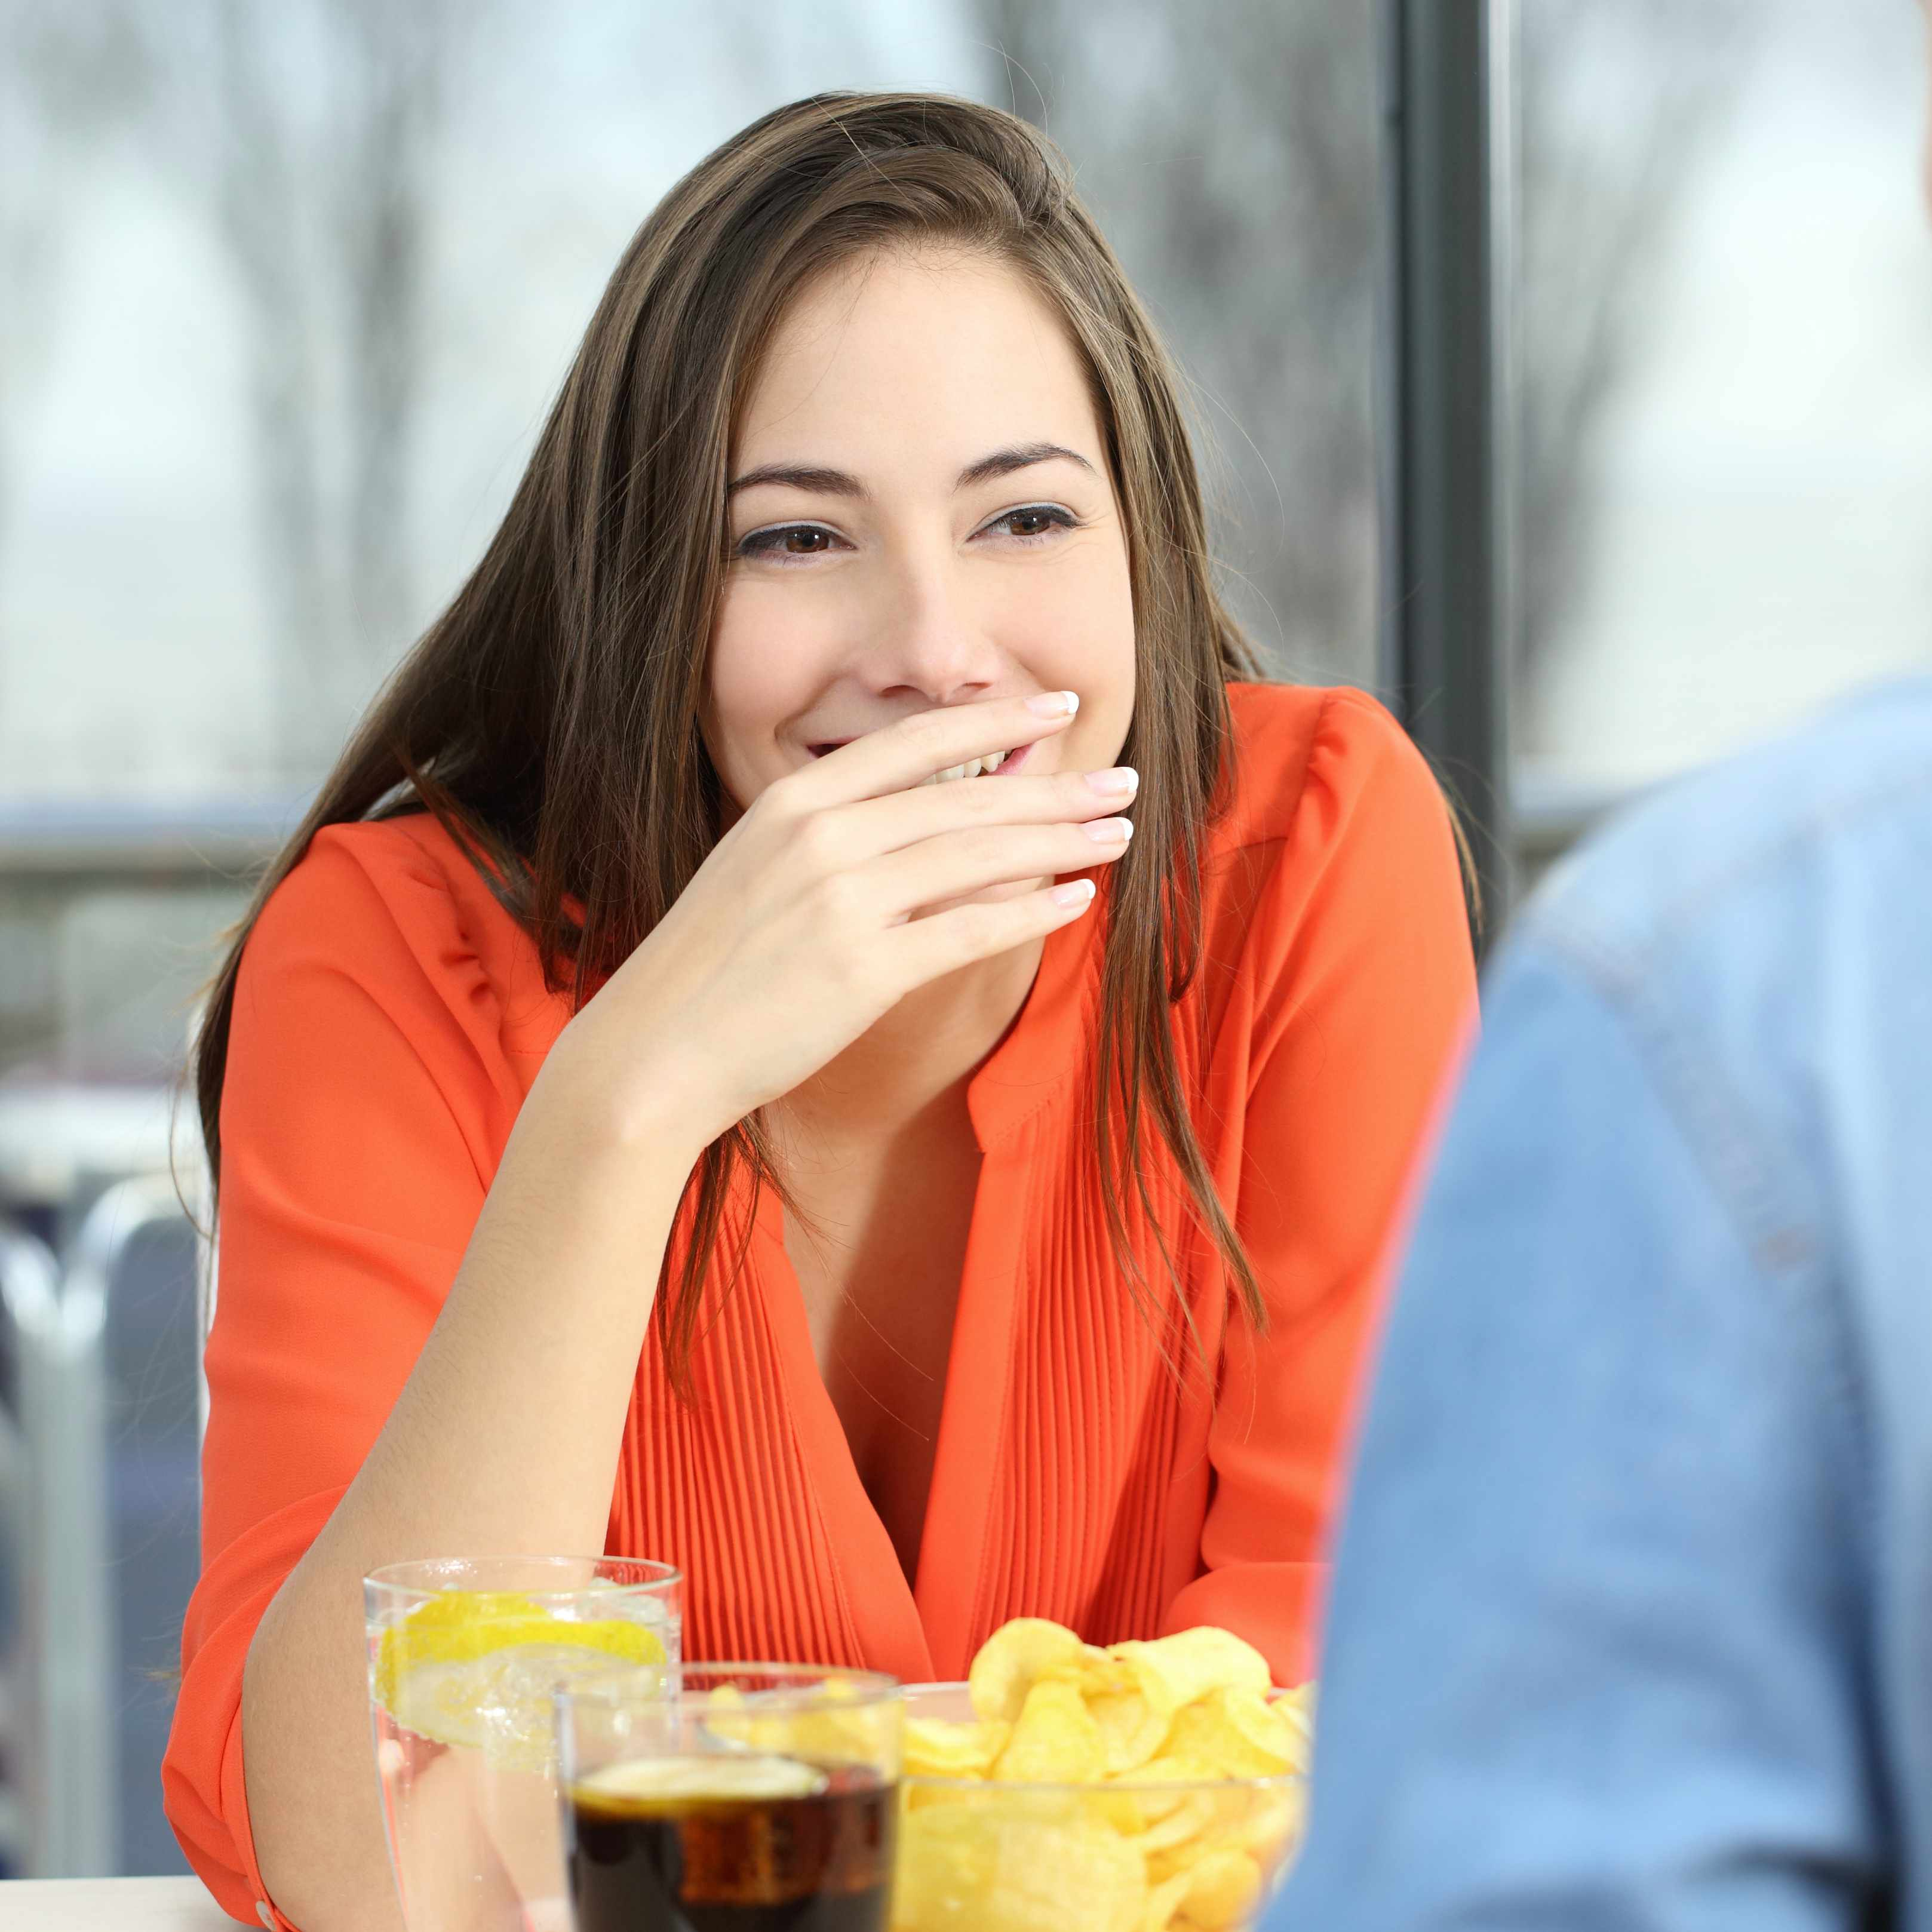 a woman sitting at a table covering her mouth because of bad breath